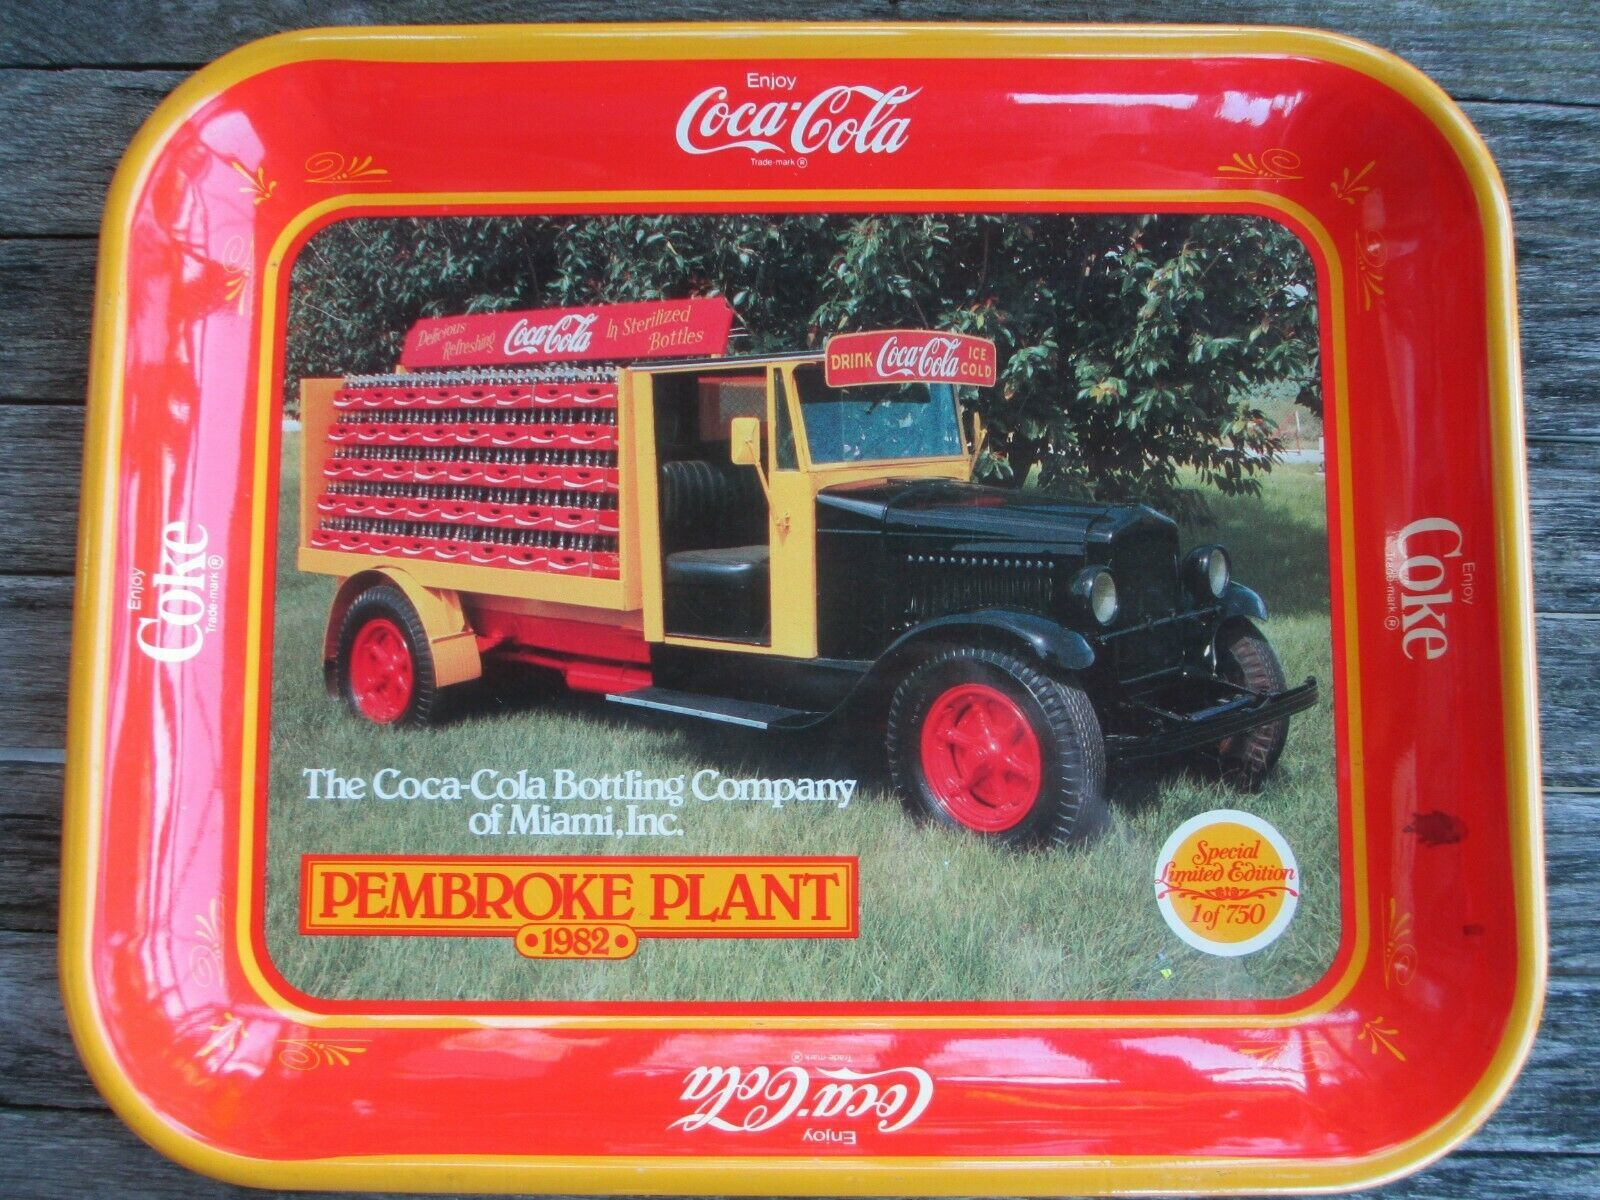 Primary image for Coca-Cola Bottling Company Miami Pembroke Plant Tray 1982 Ltd Edition 1 of 750